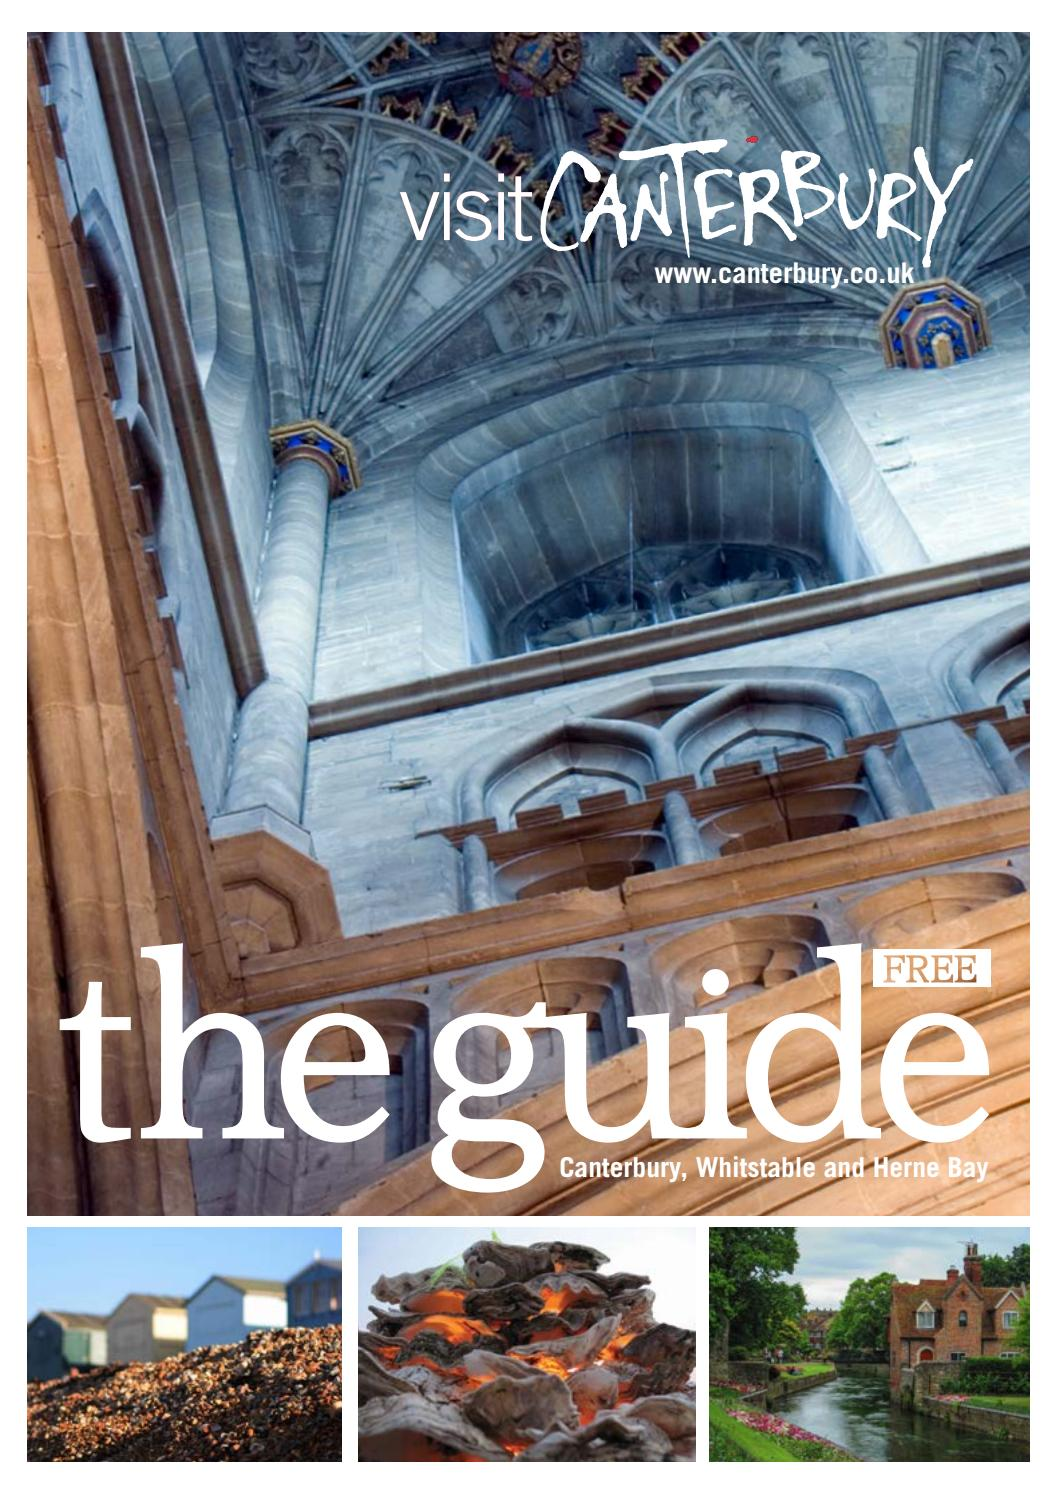 Visit Canterbury Holiday Guide 2017 by Visit Canterbury - issuu